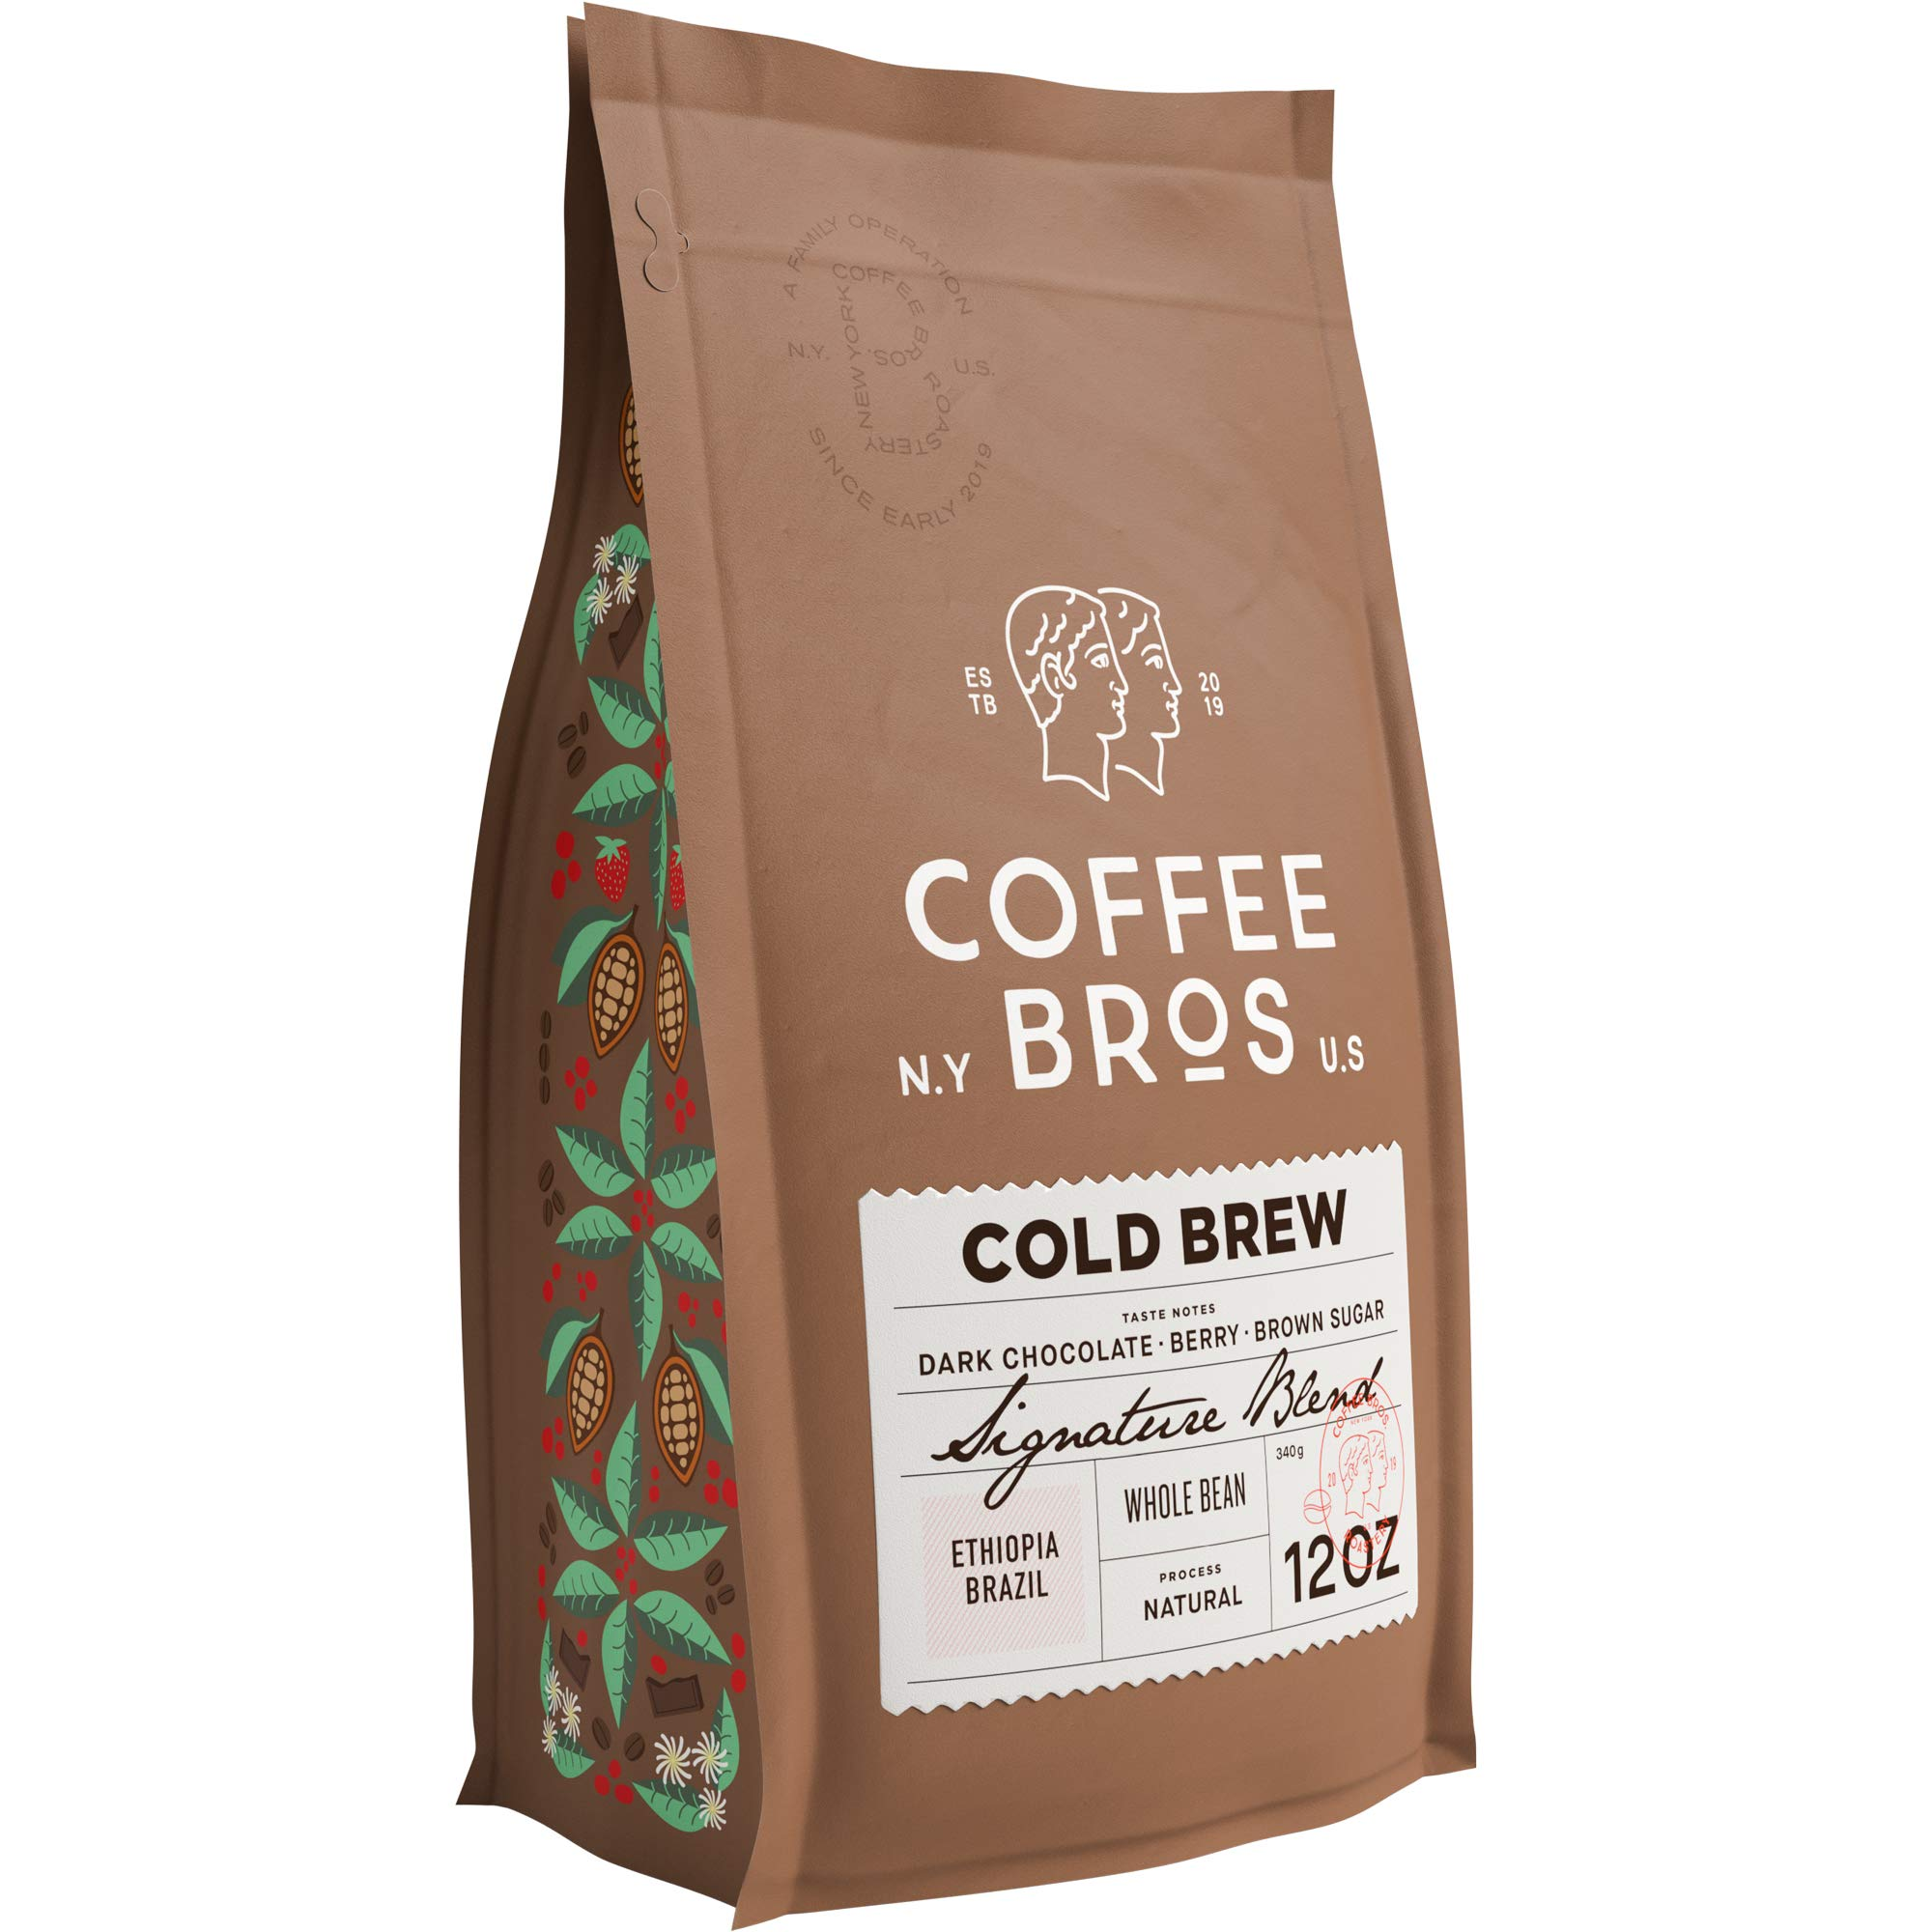 Coffee Bros. Cold Brew